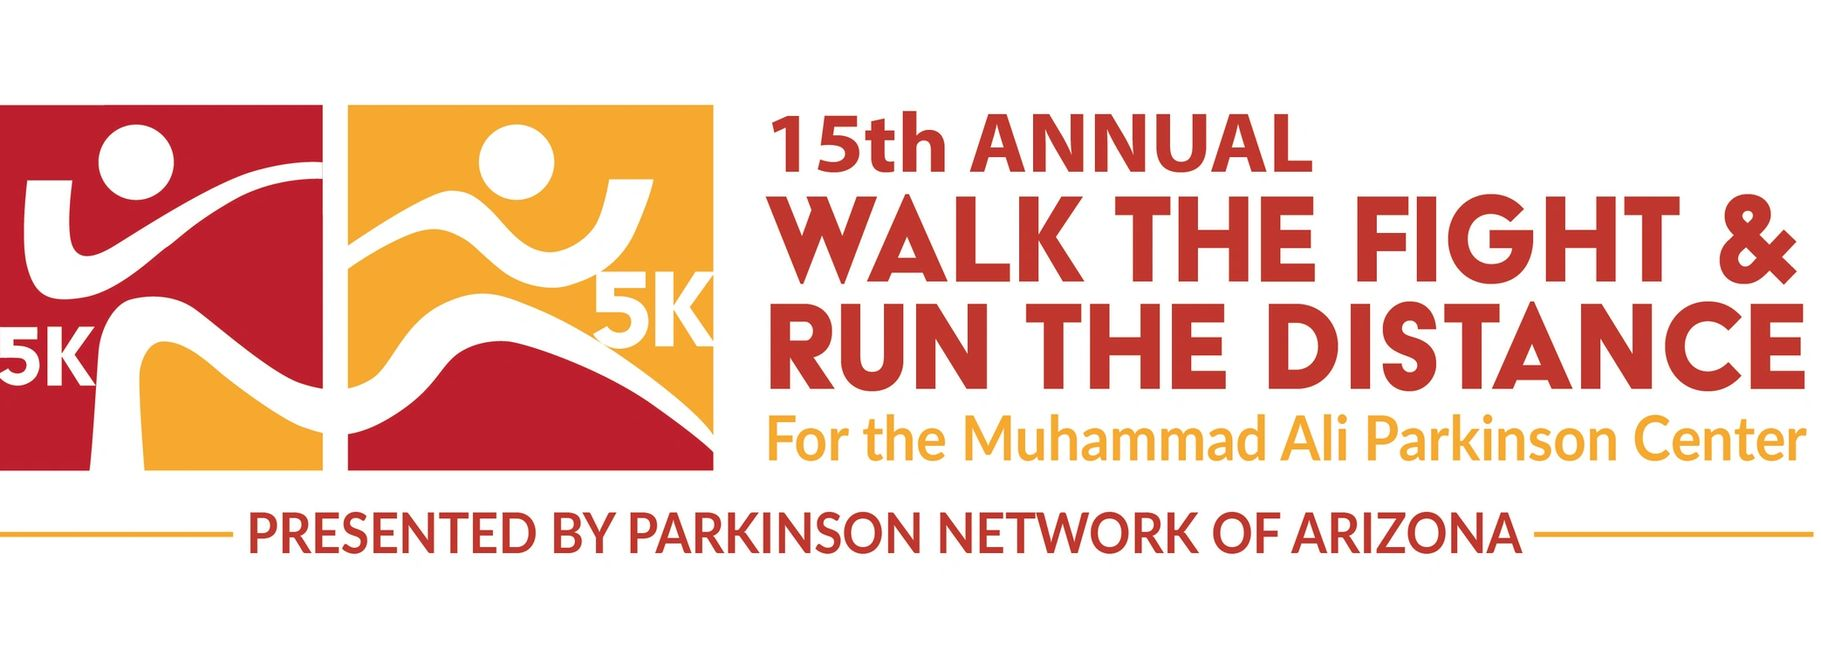 15th Annual Walk the Fight & Run the Distance For the Muhammad Ali Parkinson Center